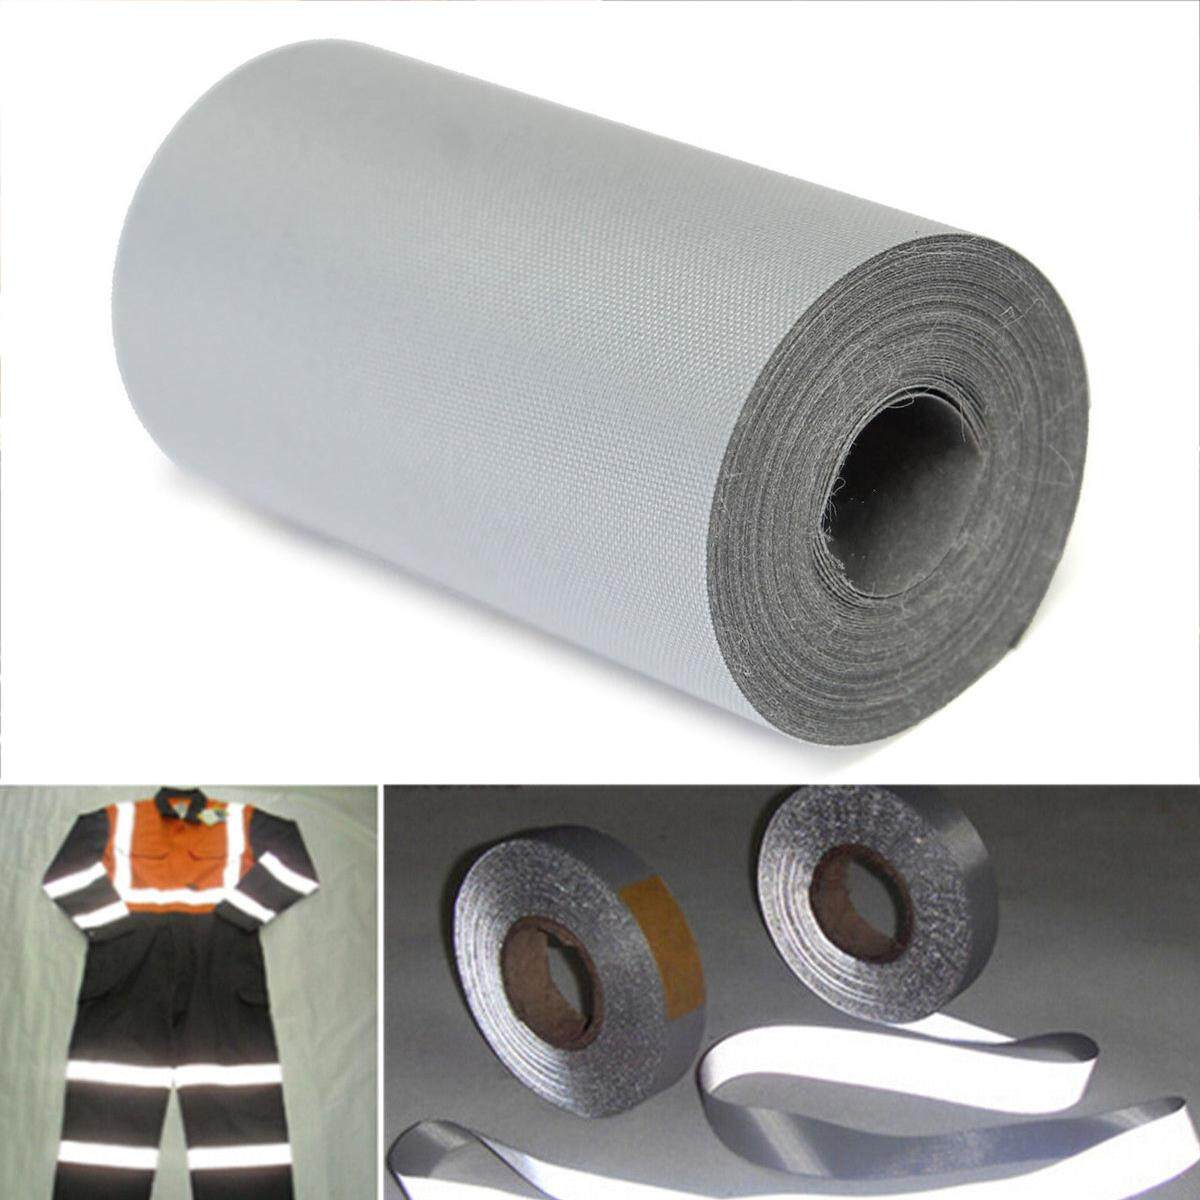 3 Meter Silver Fabric Reflective Warning Tape Safety Sew Trim Sticker New